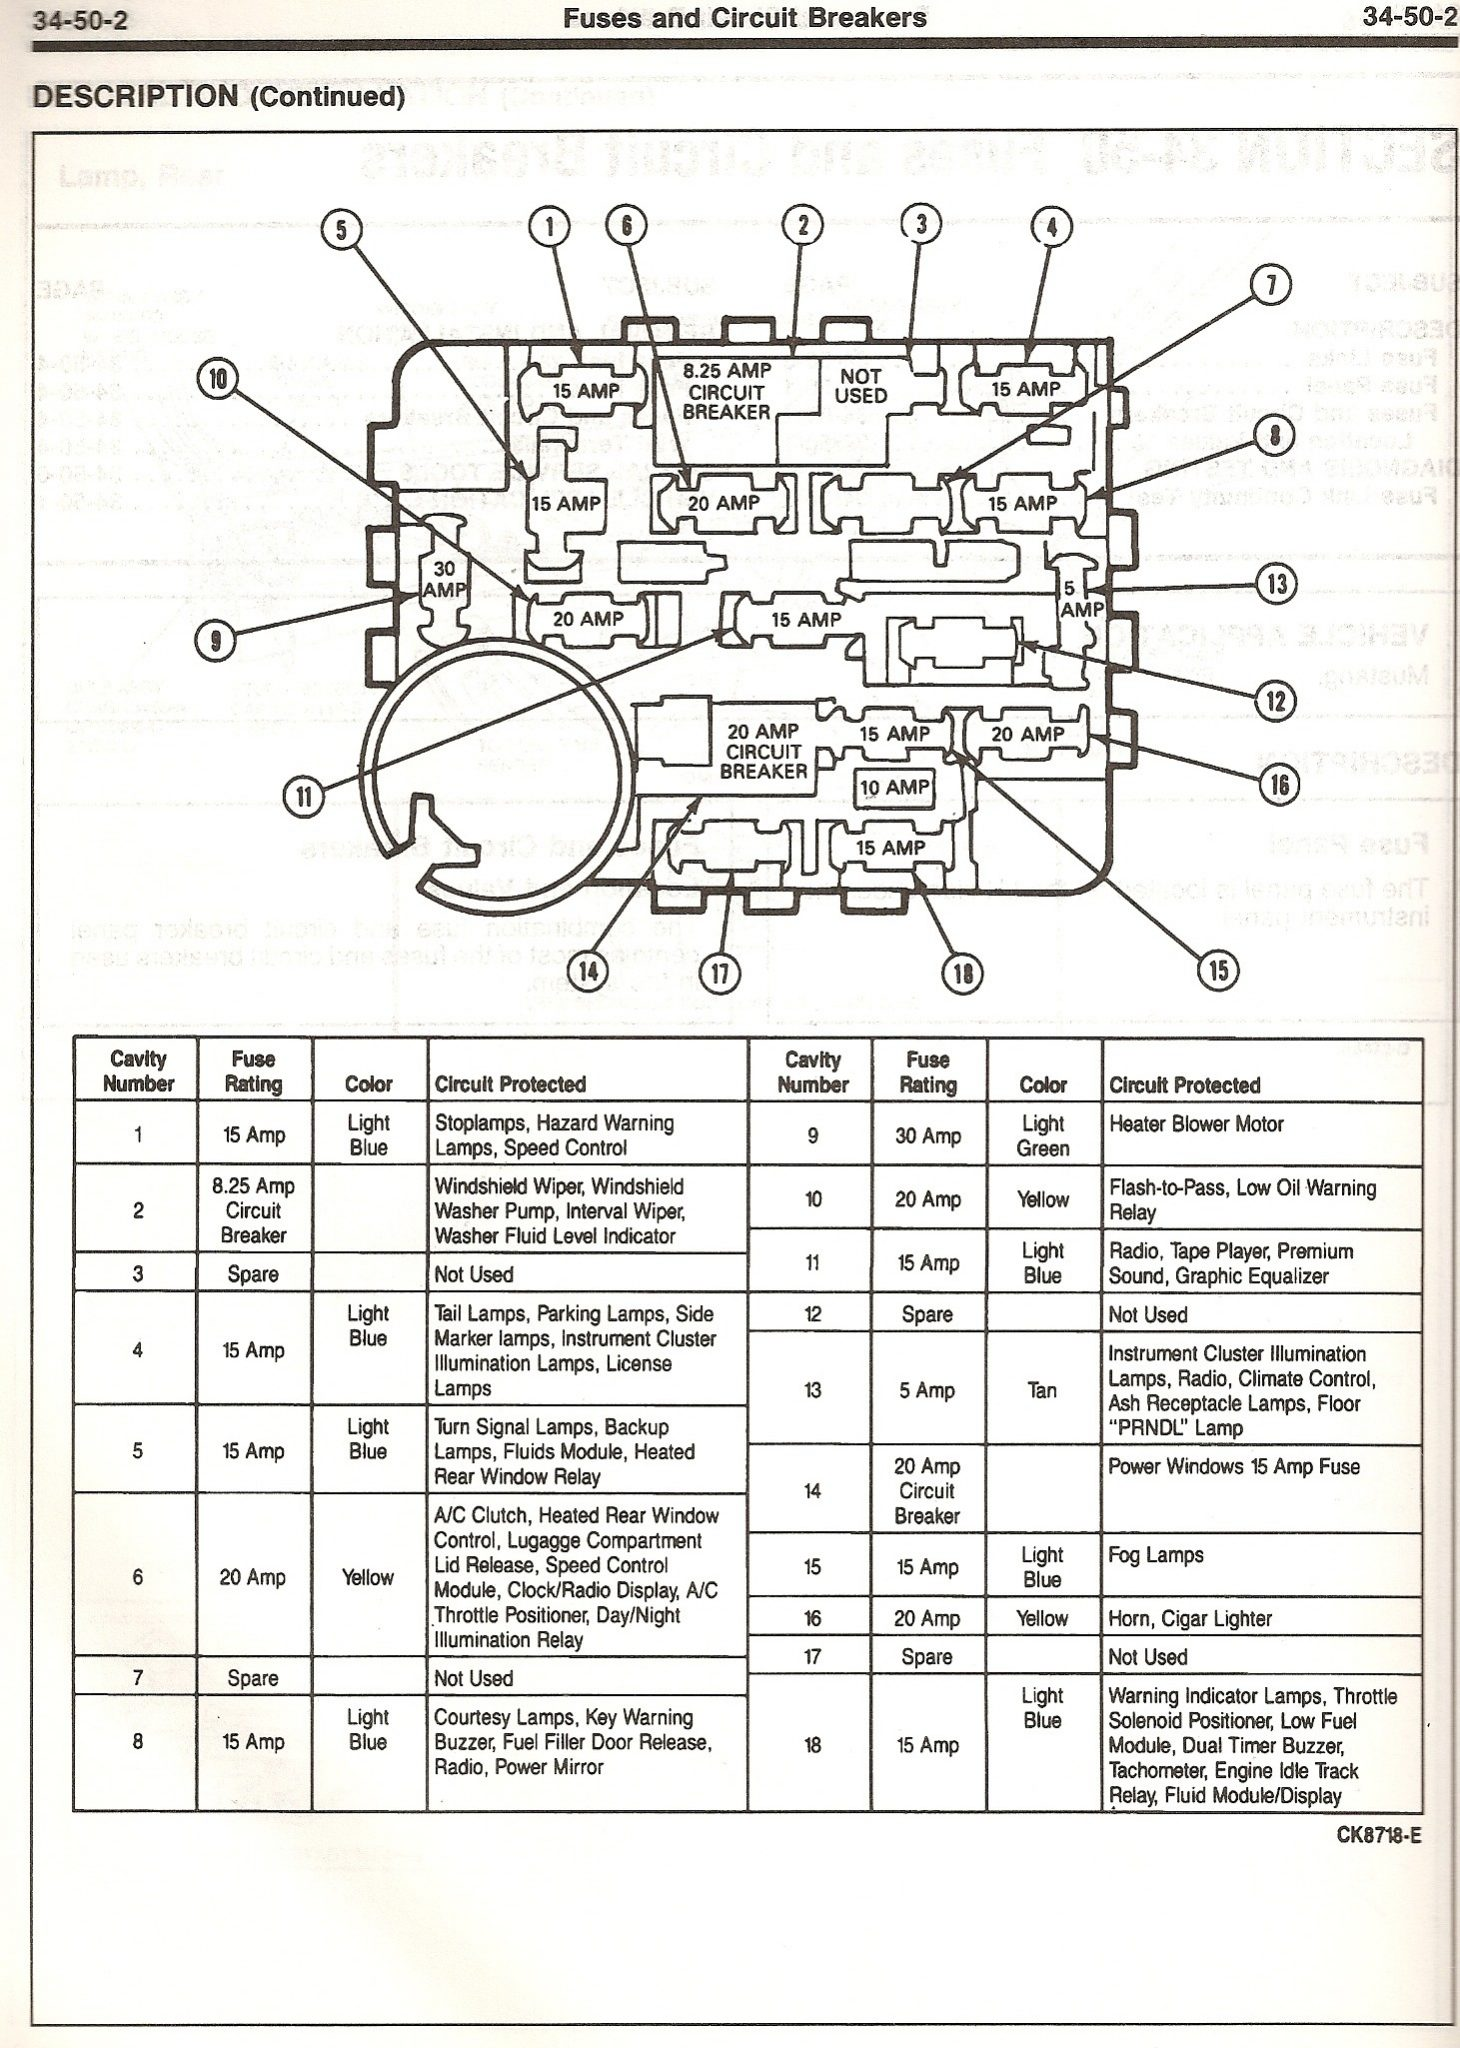 1007265 Wiring Diagram 1951 F 1 A also 67tyx Ford E 350 Van Check Engine Light On When together with ShowAssembly in addition Ford Serpentine Belt Diagram as well 5475u Airbag Impact Sensors 2004 Audi A4 Convertible. on 2003 ford escape wiring diagram